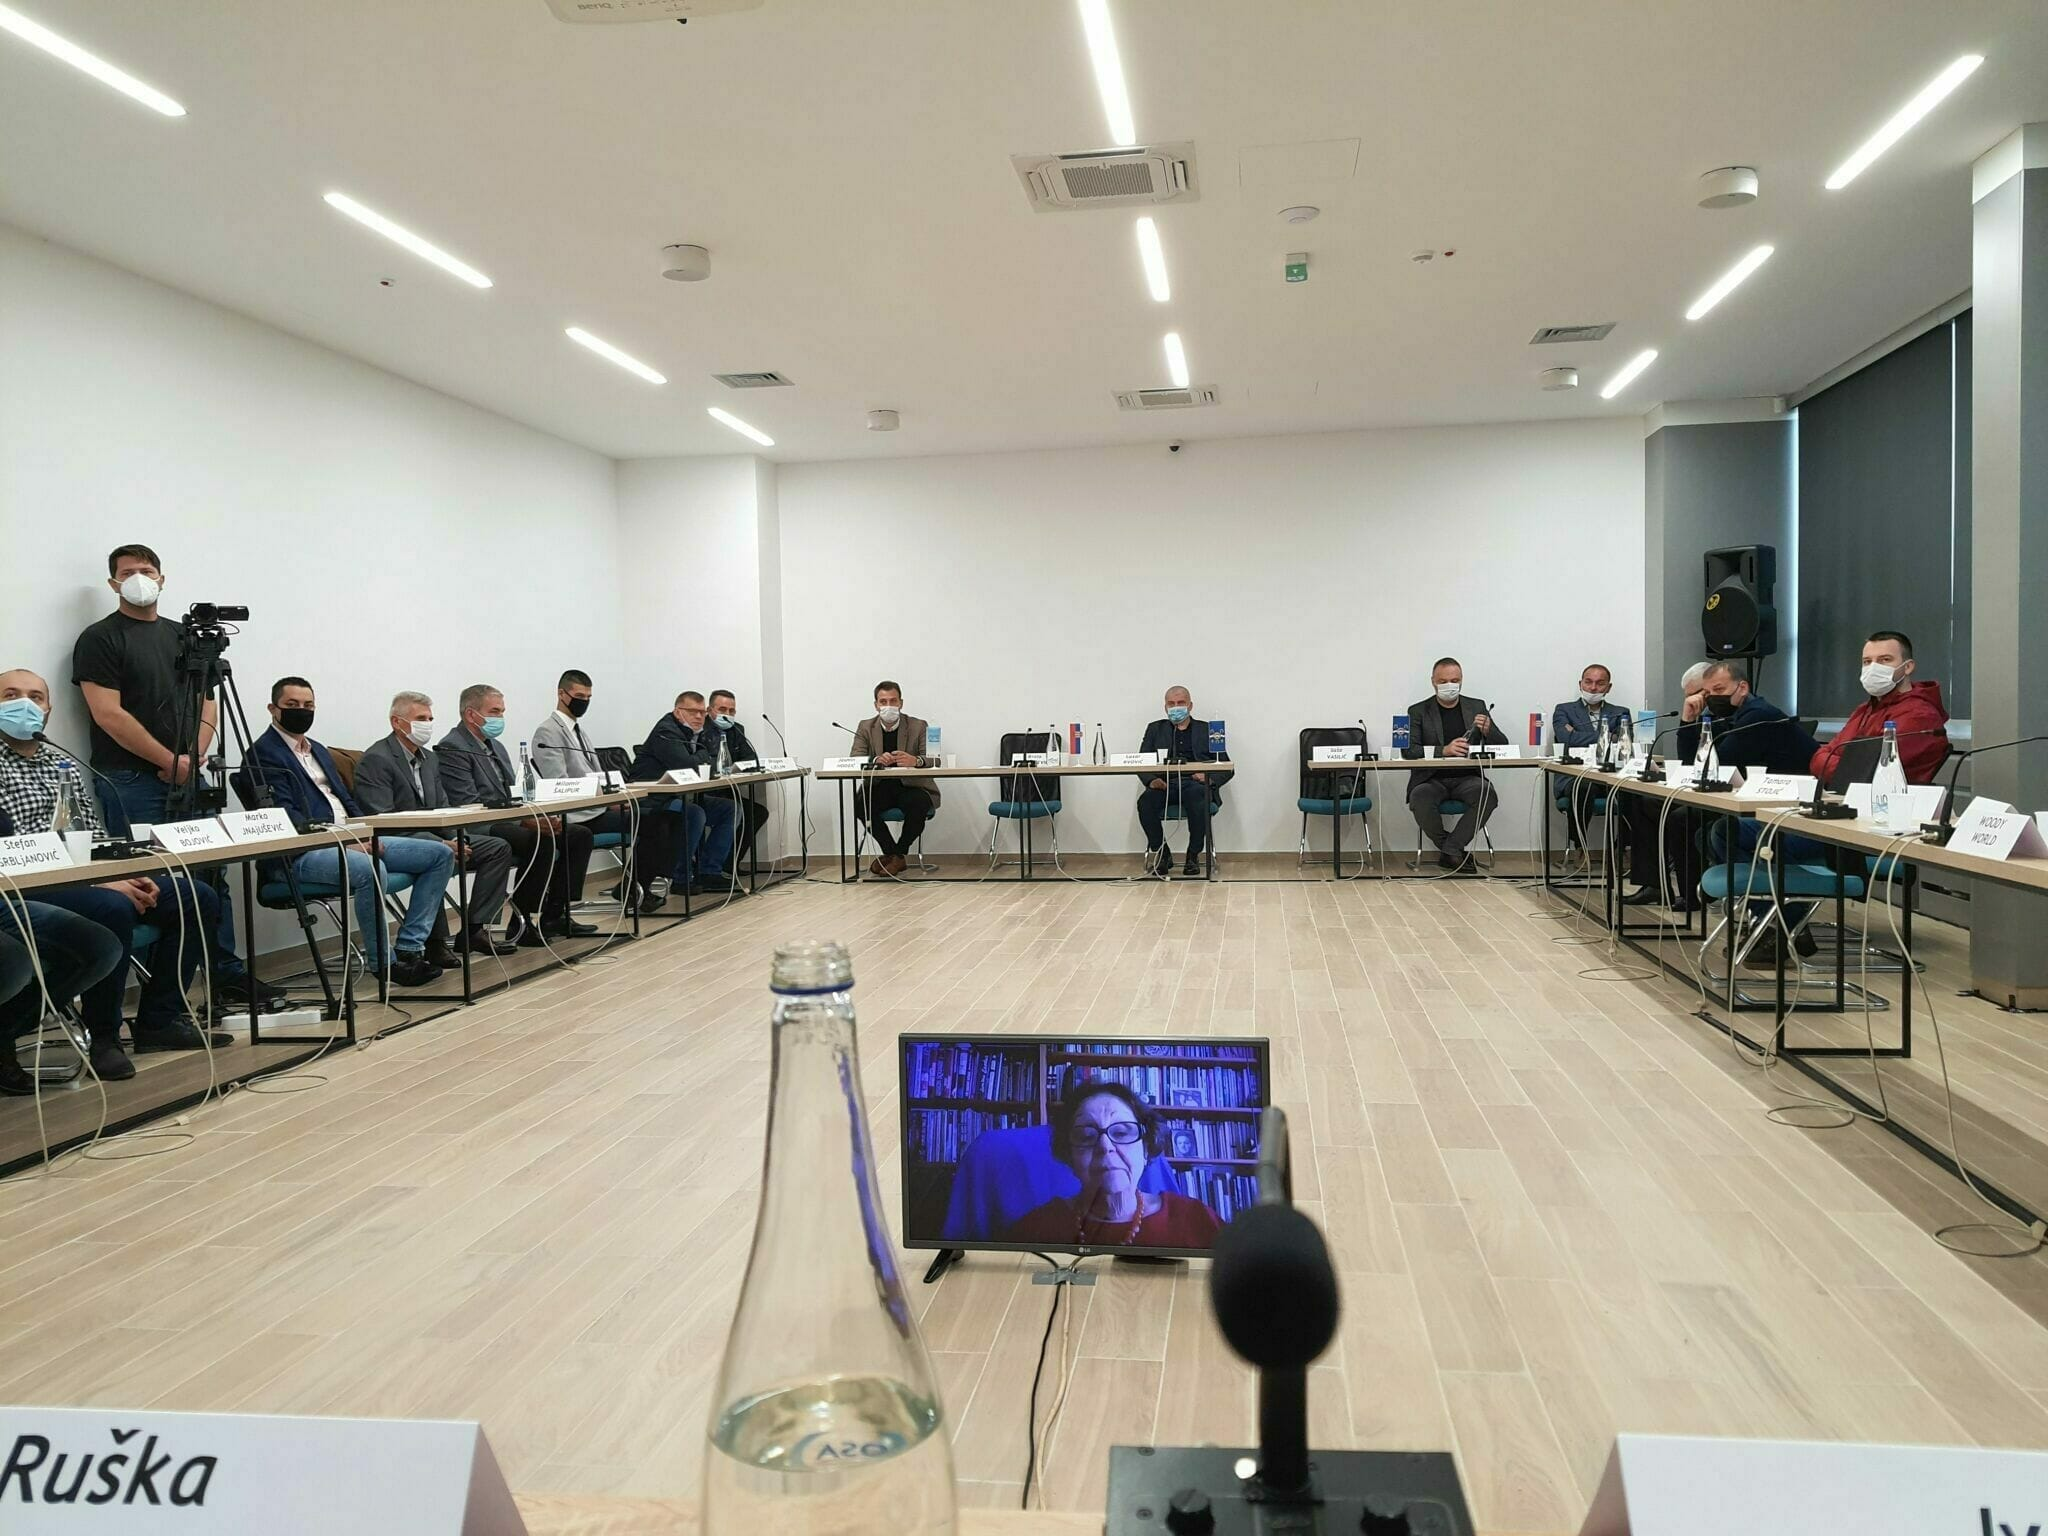 We discussed in Priboj how to best develop Serbia by using a bottom-up approach